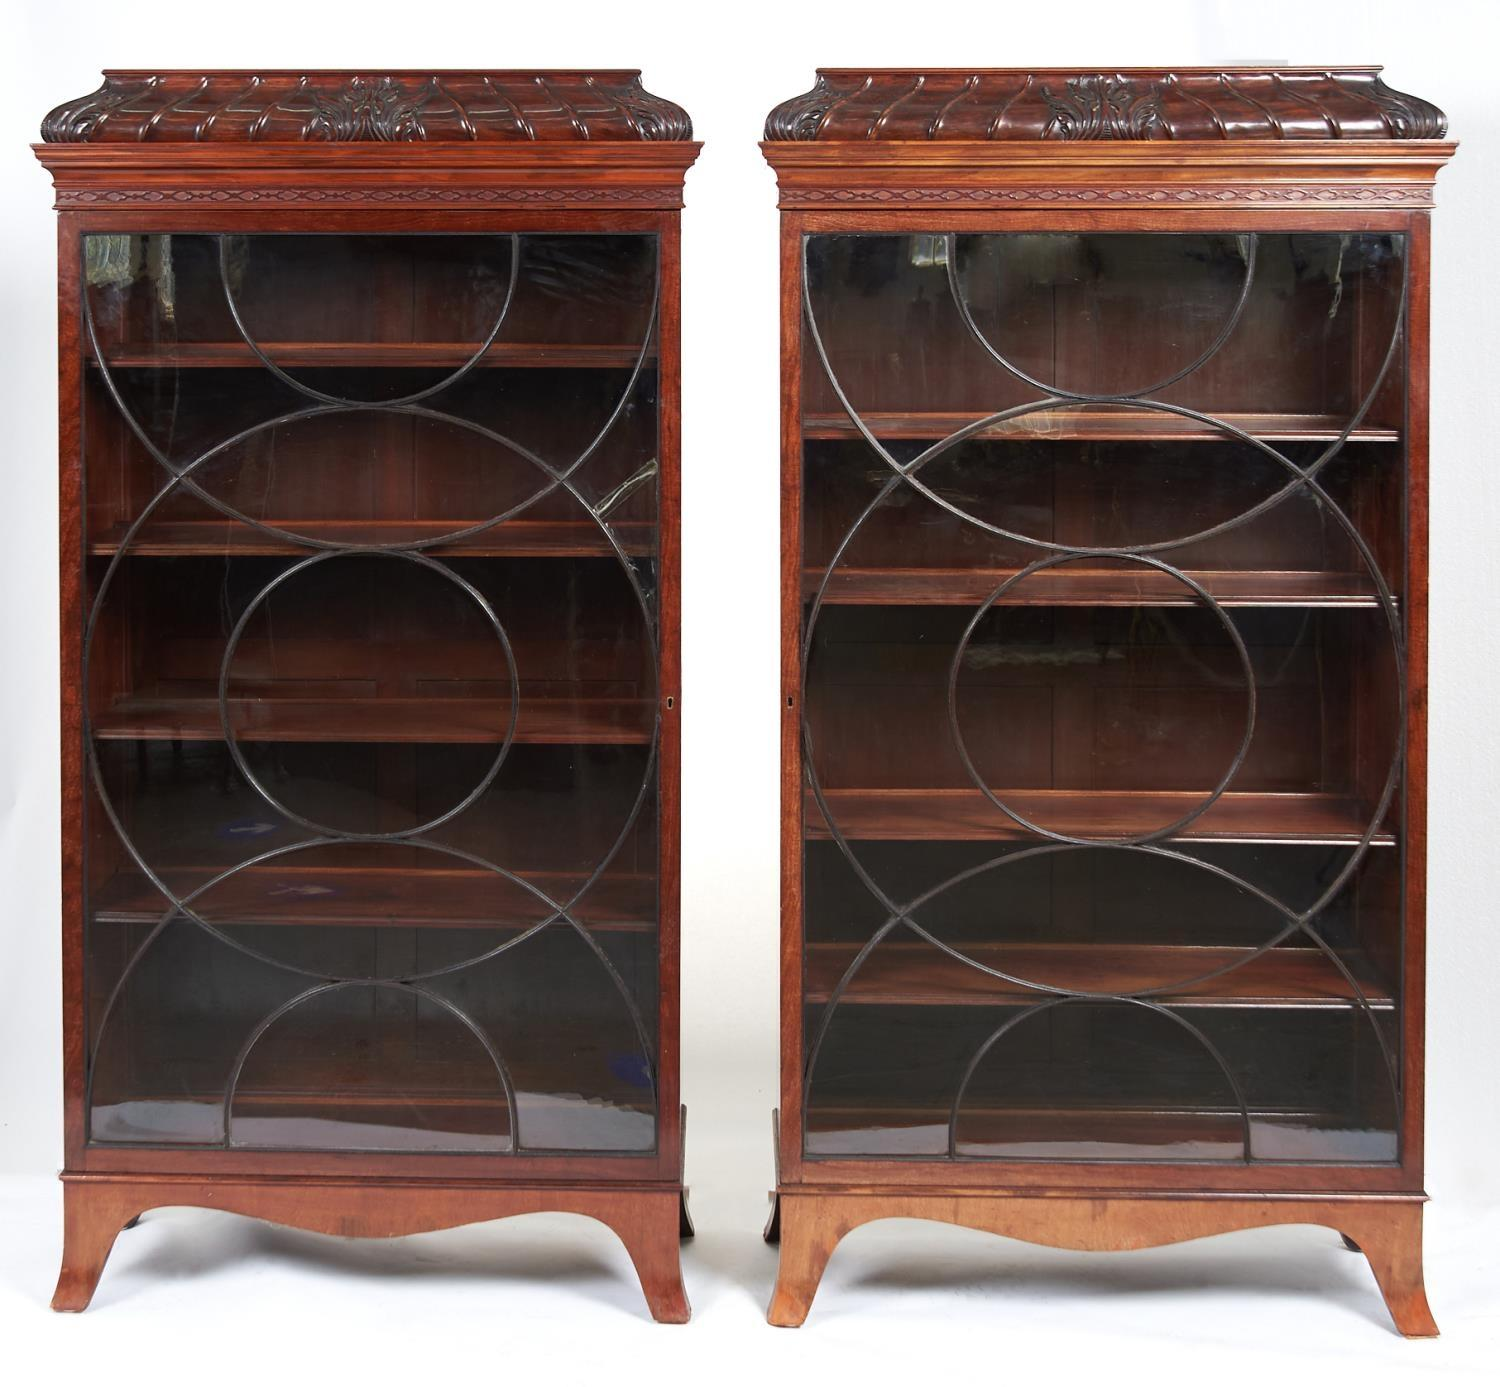 A PAIR OF ENGLISH MAHOGANY CHINA CABINETS, EARLY 20TH C, THE FLAP TOPPED CARVED BOMBE PEDIMENT